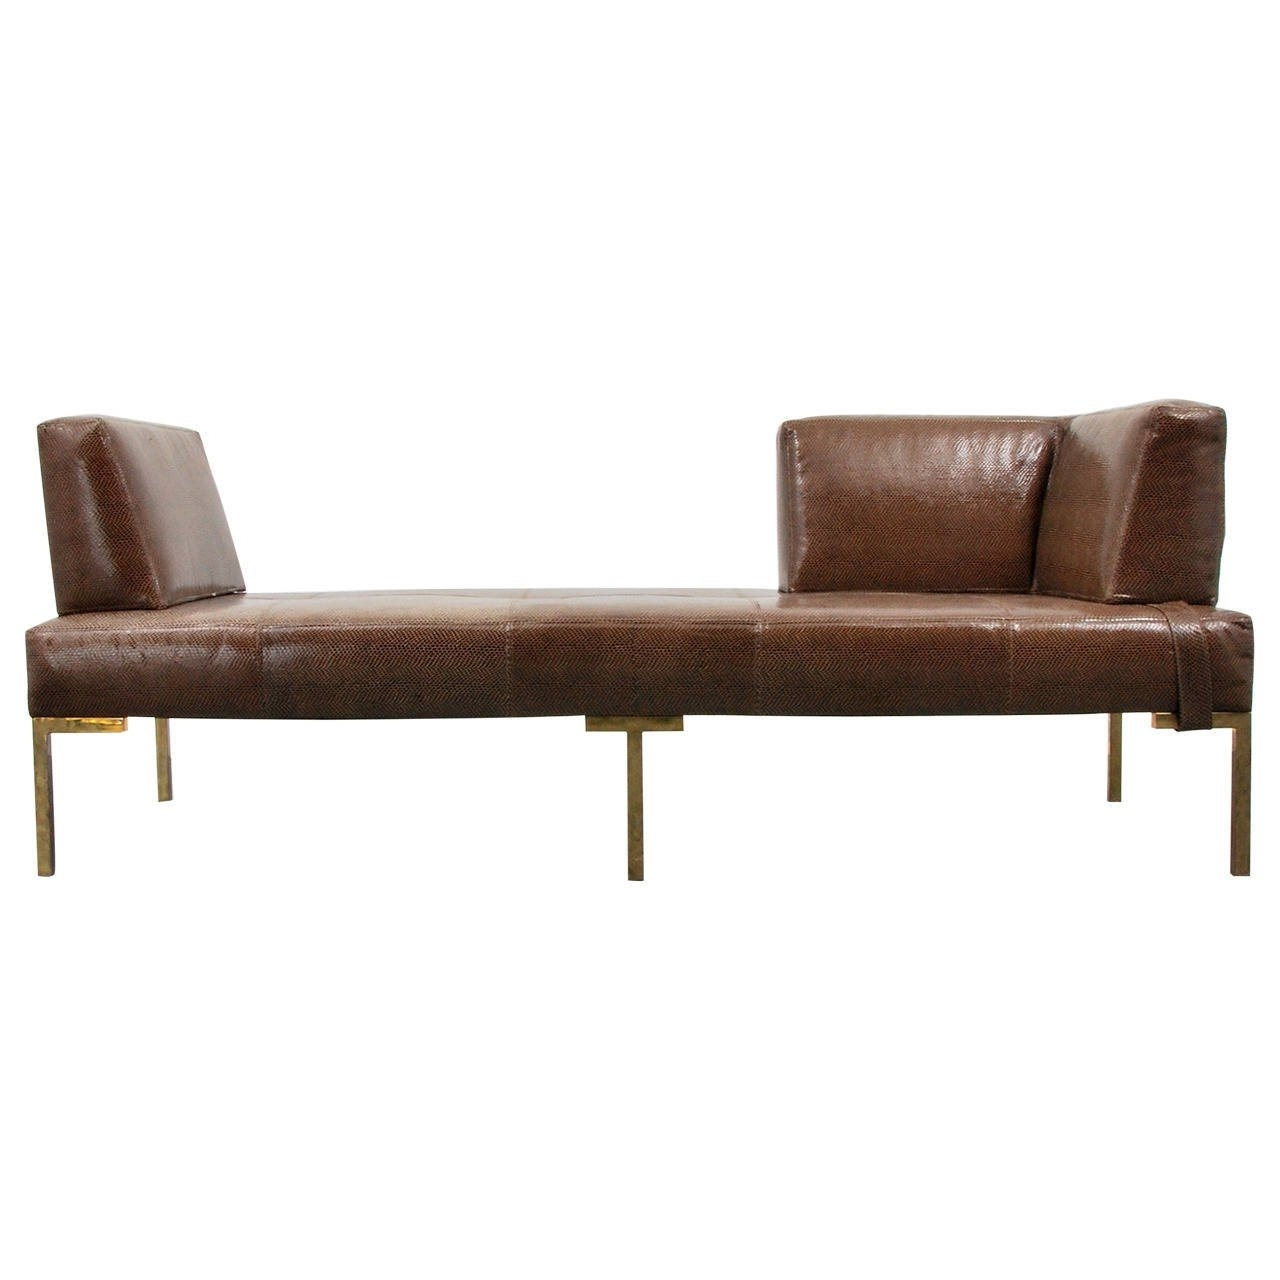 Well Known Chaise Lounge Daybeds Regarding Luigi Gentile Leather Daybeds Or Chaise Lounges, Two Available At (View 2 of 15)